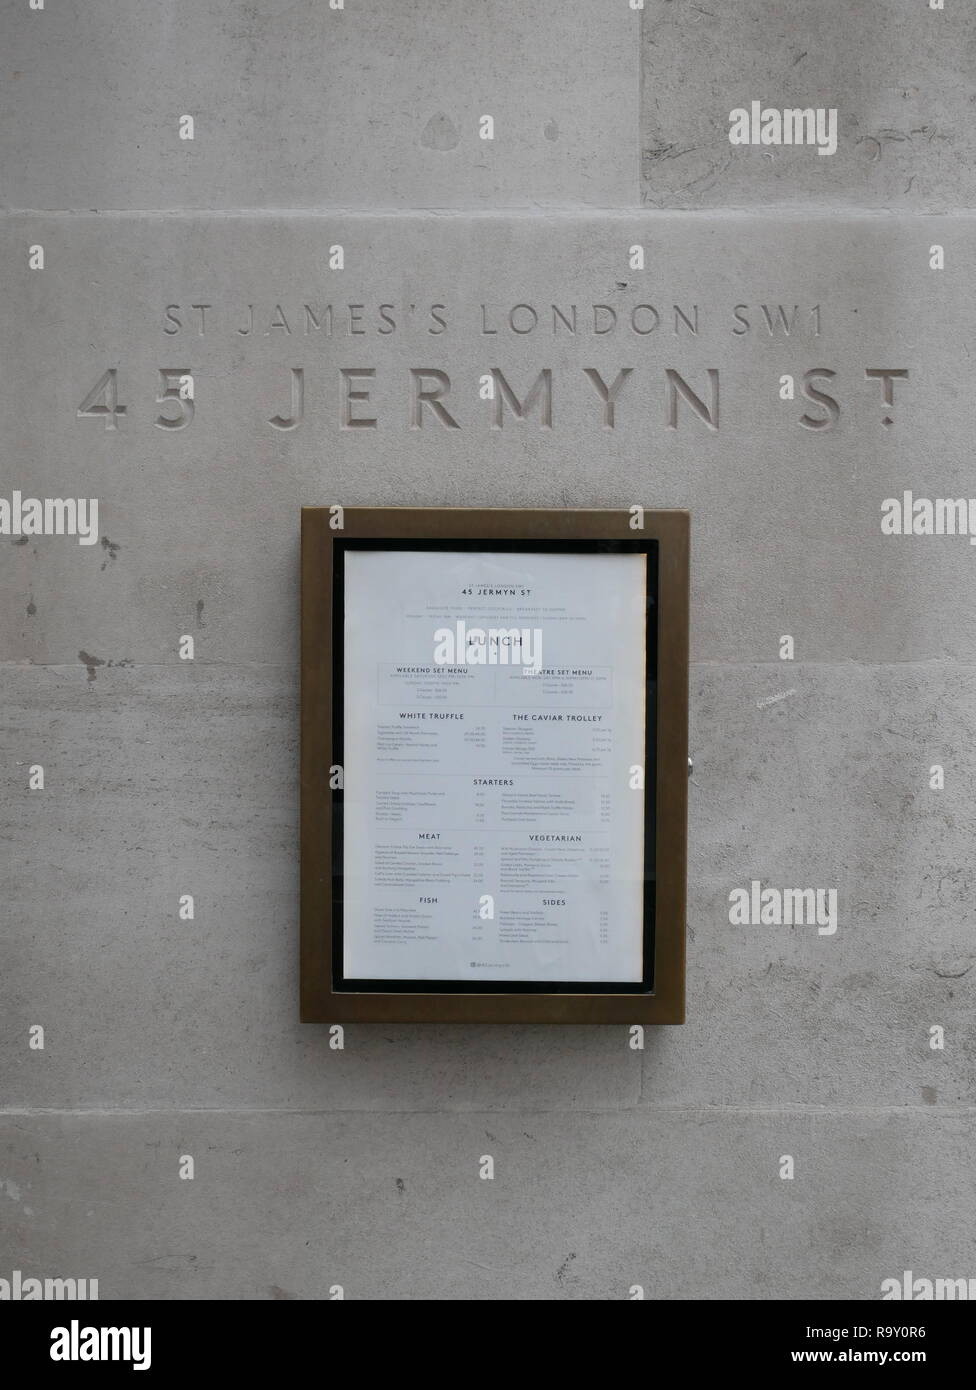 45 Jermyn Street restaurant in St. James, London, England. - Stock Image